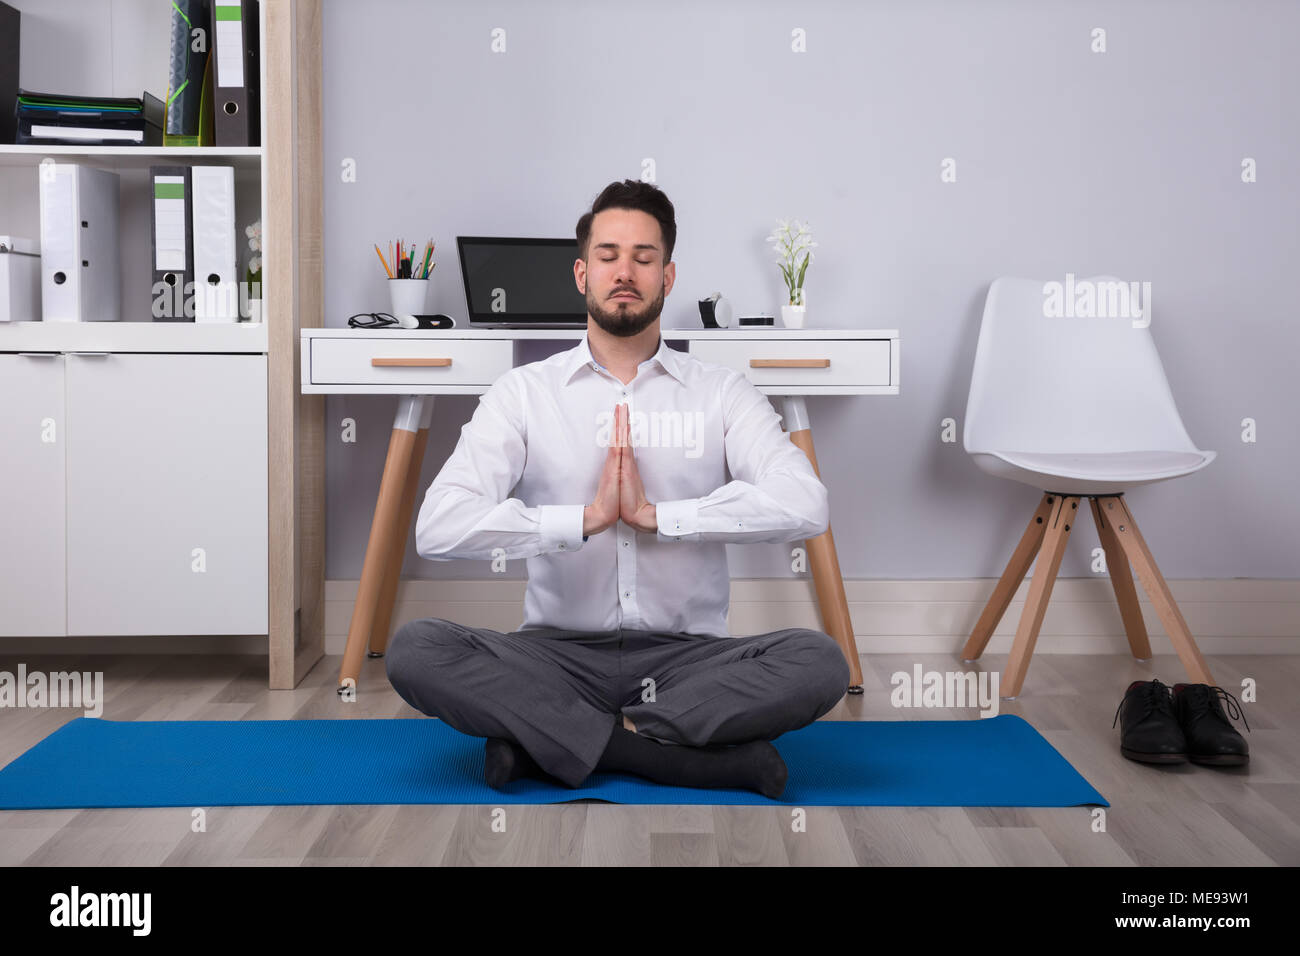 Rocking Chair Yoga Pose Meditating Chair Stock Photos And Meditating Chair Stock